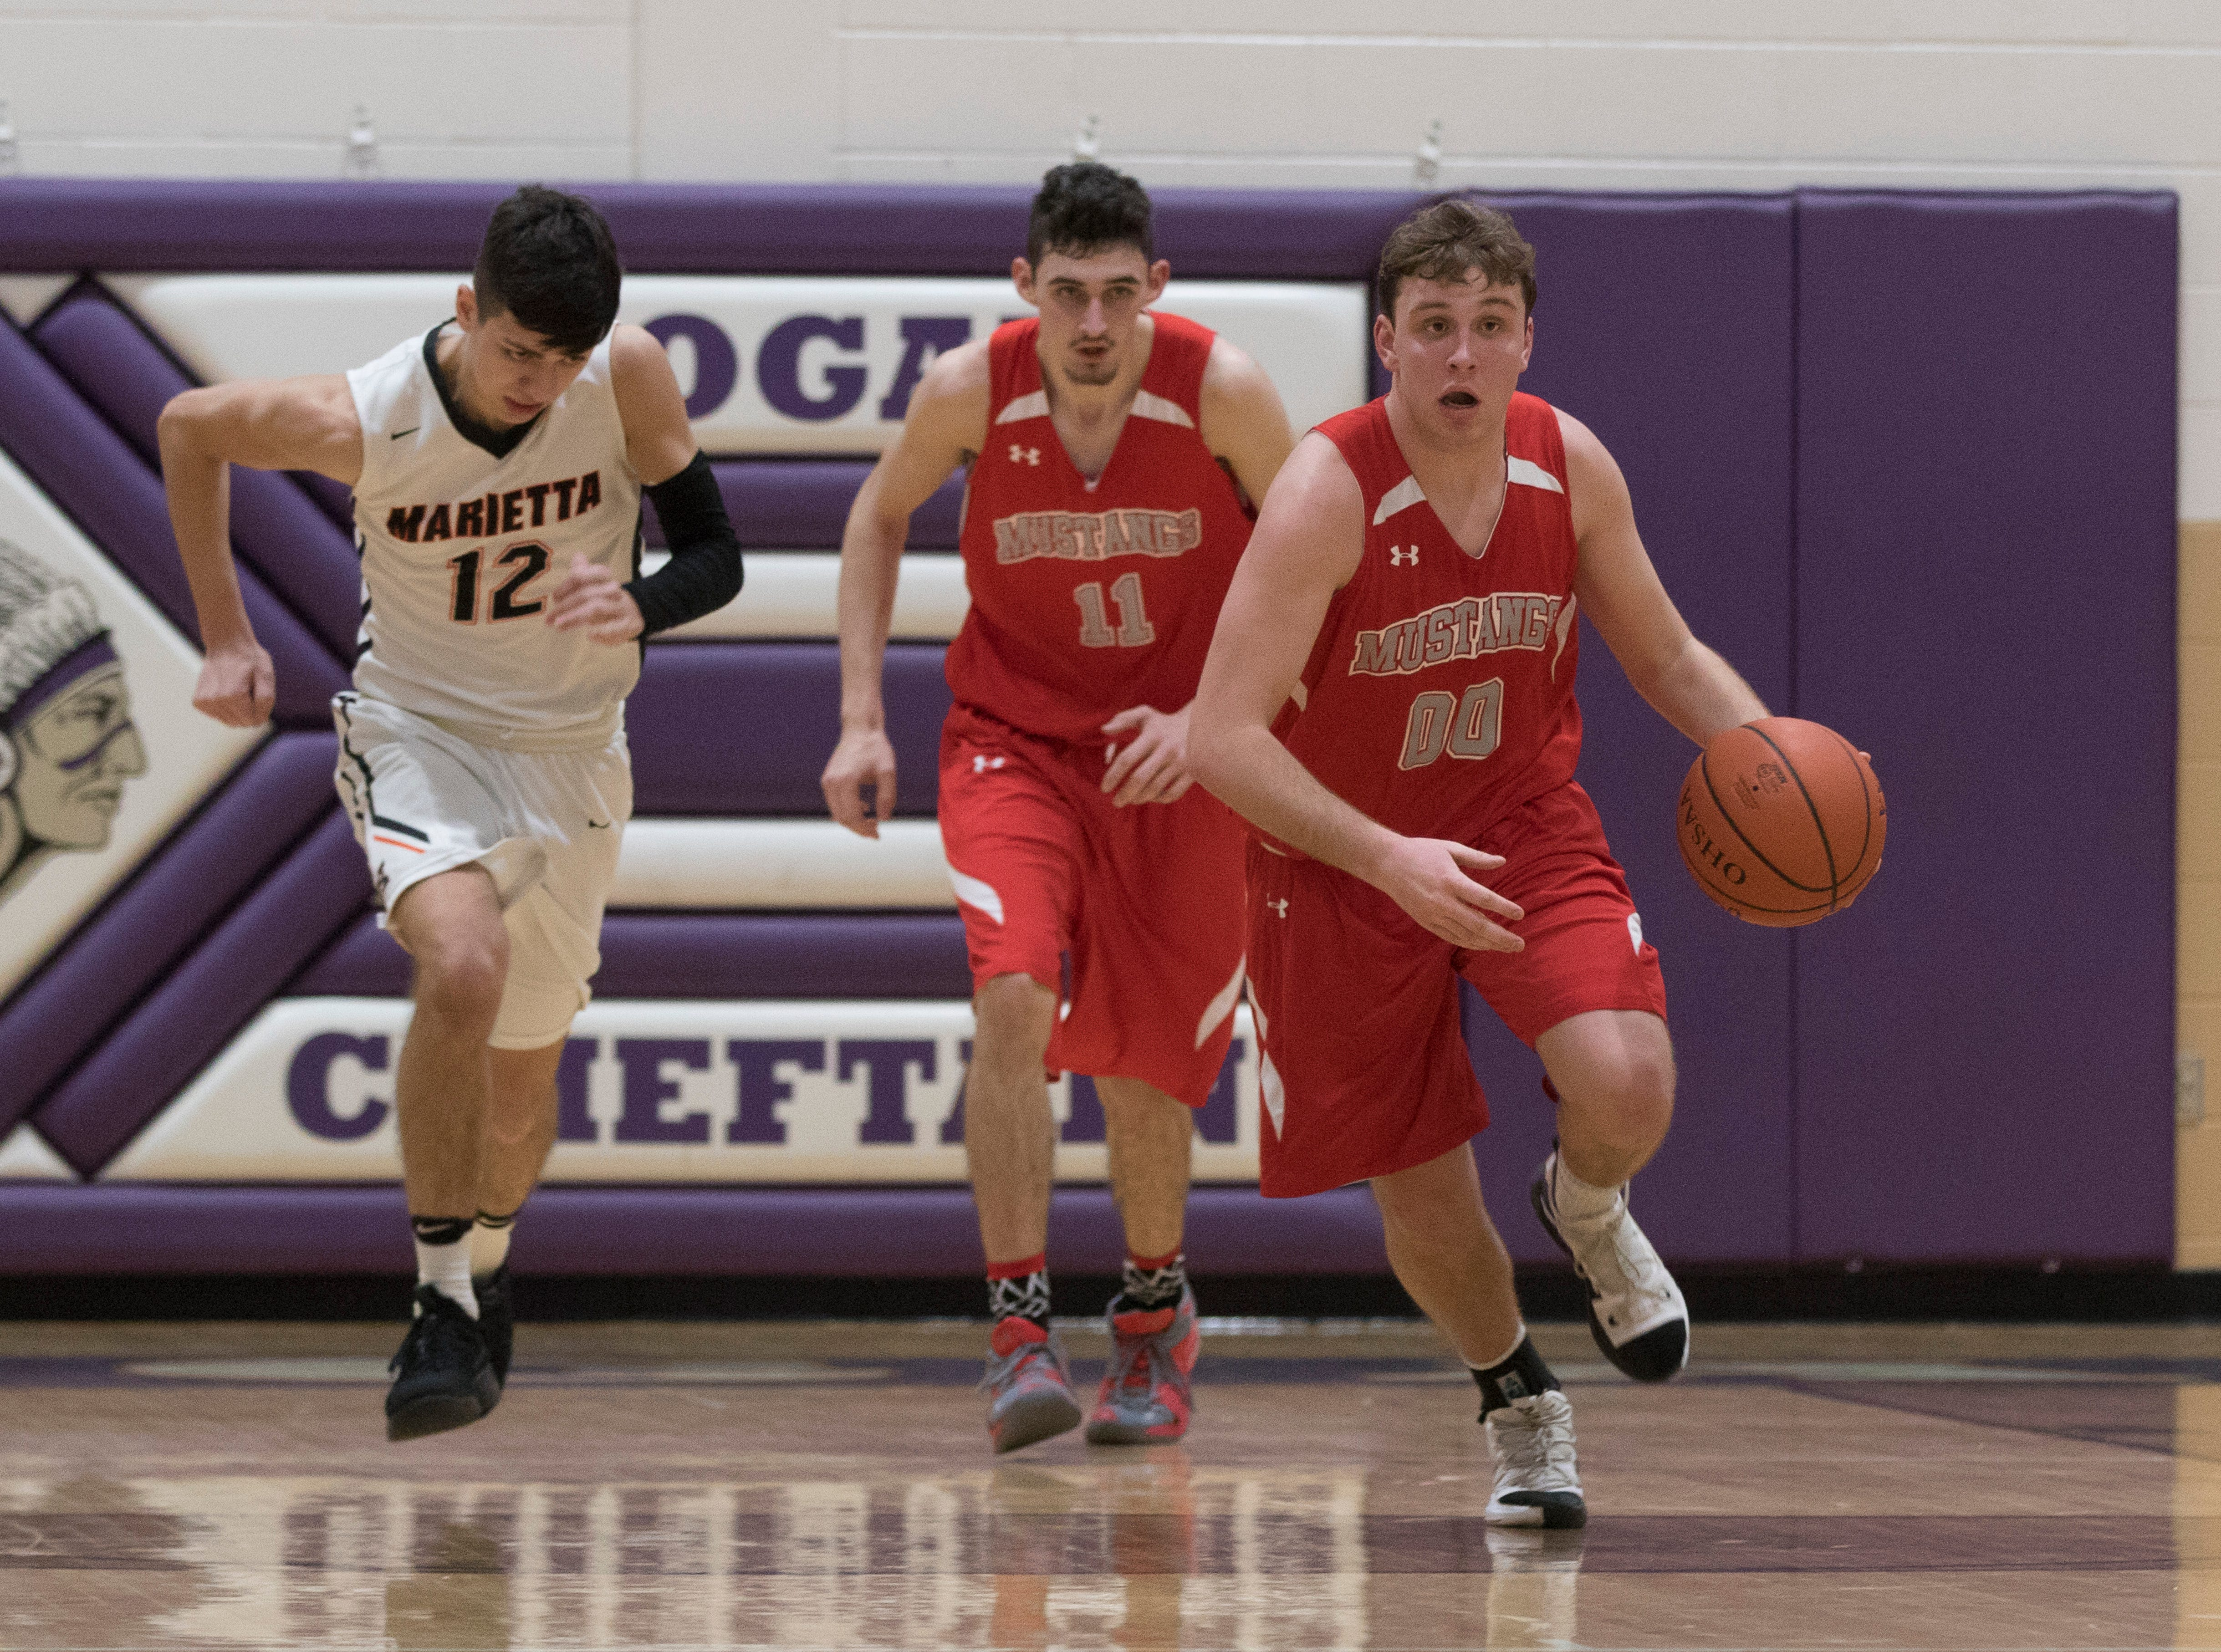 Westfall fell to Marietta 48-43 in a Division II sectional semifinal's game Tuesday night at Logan High School.